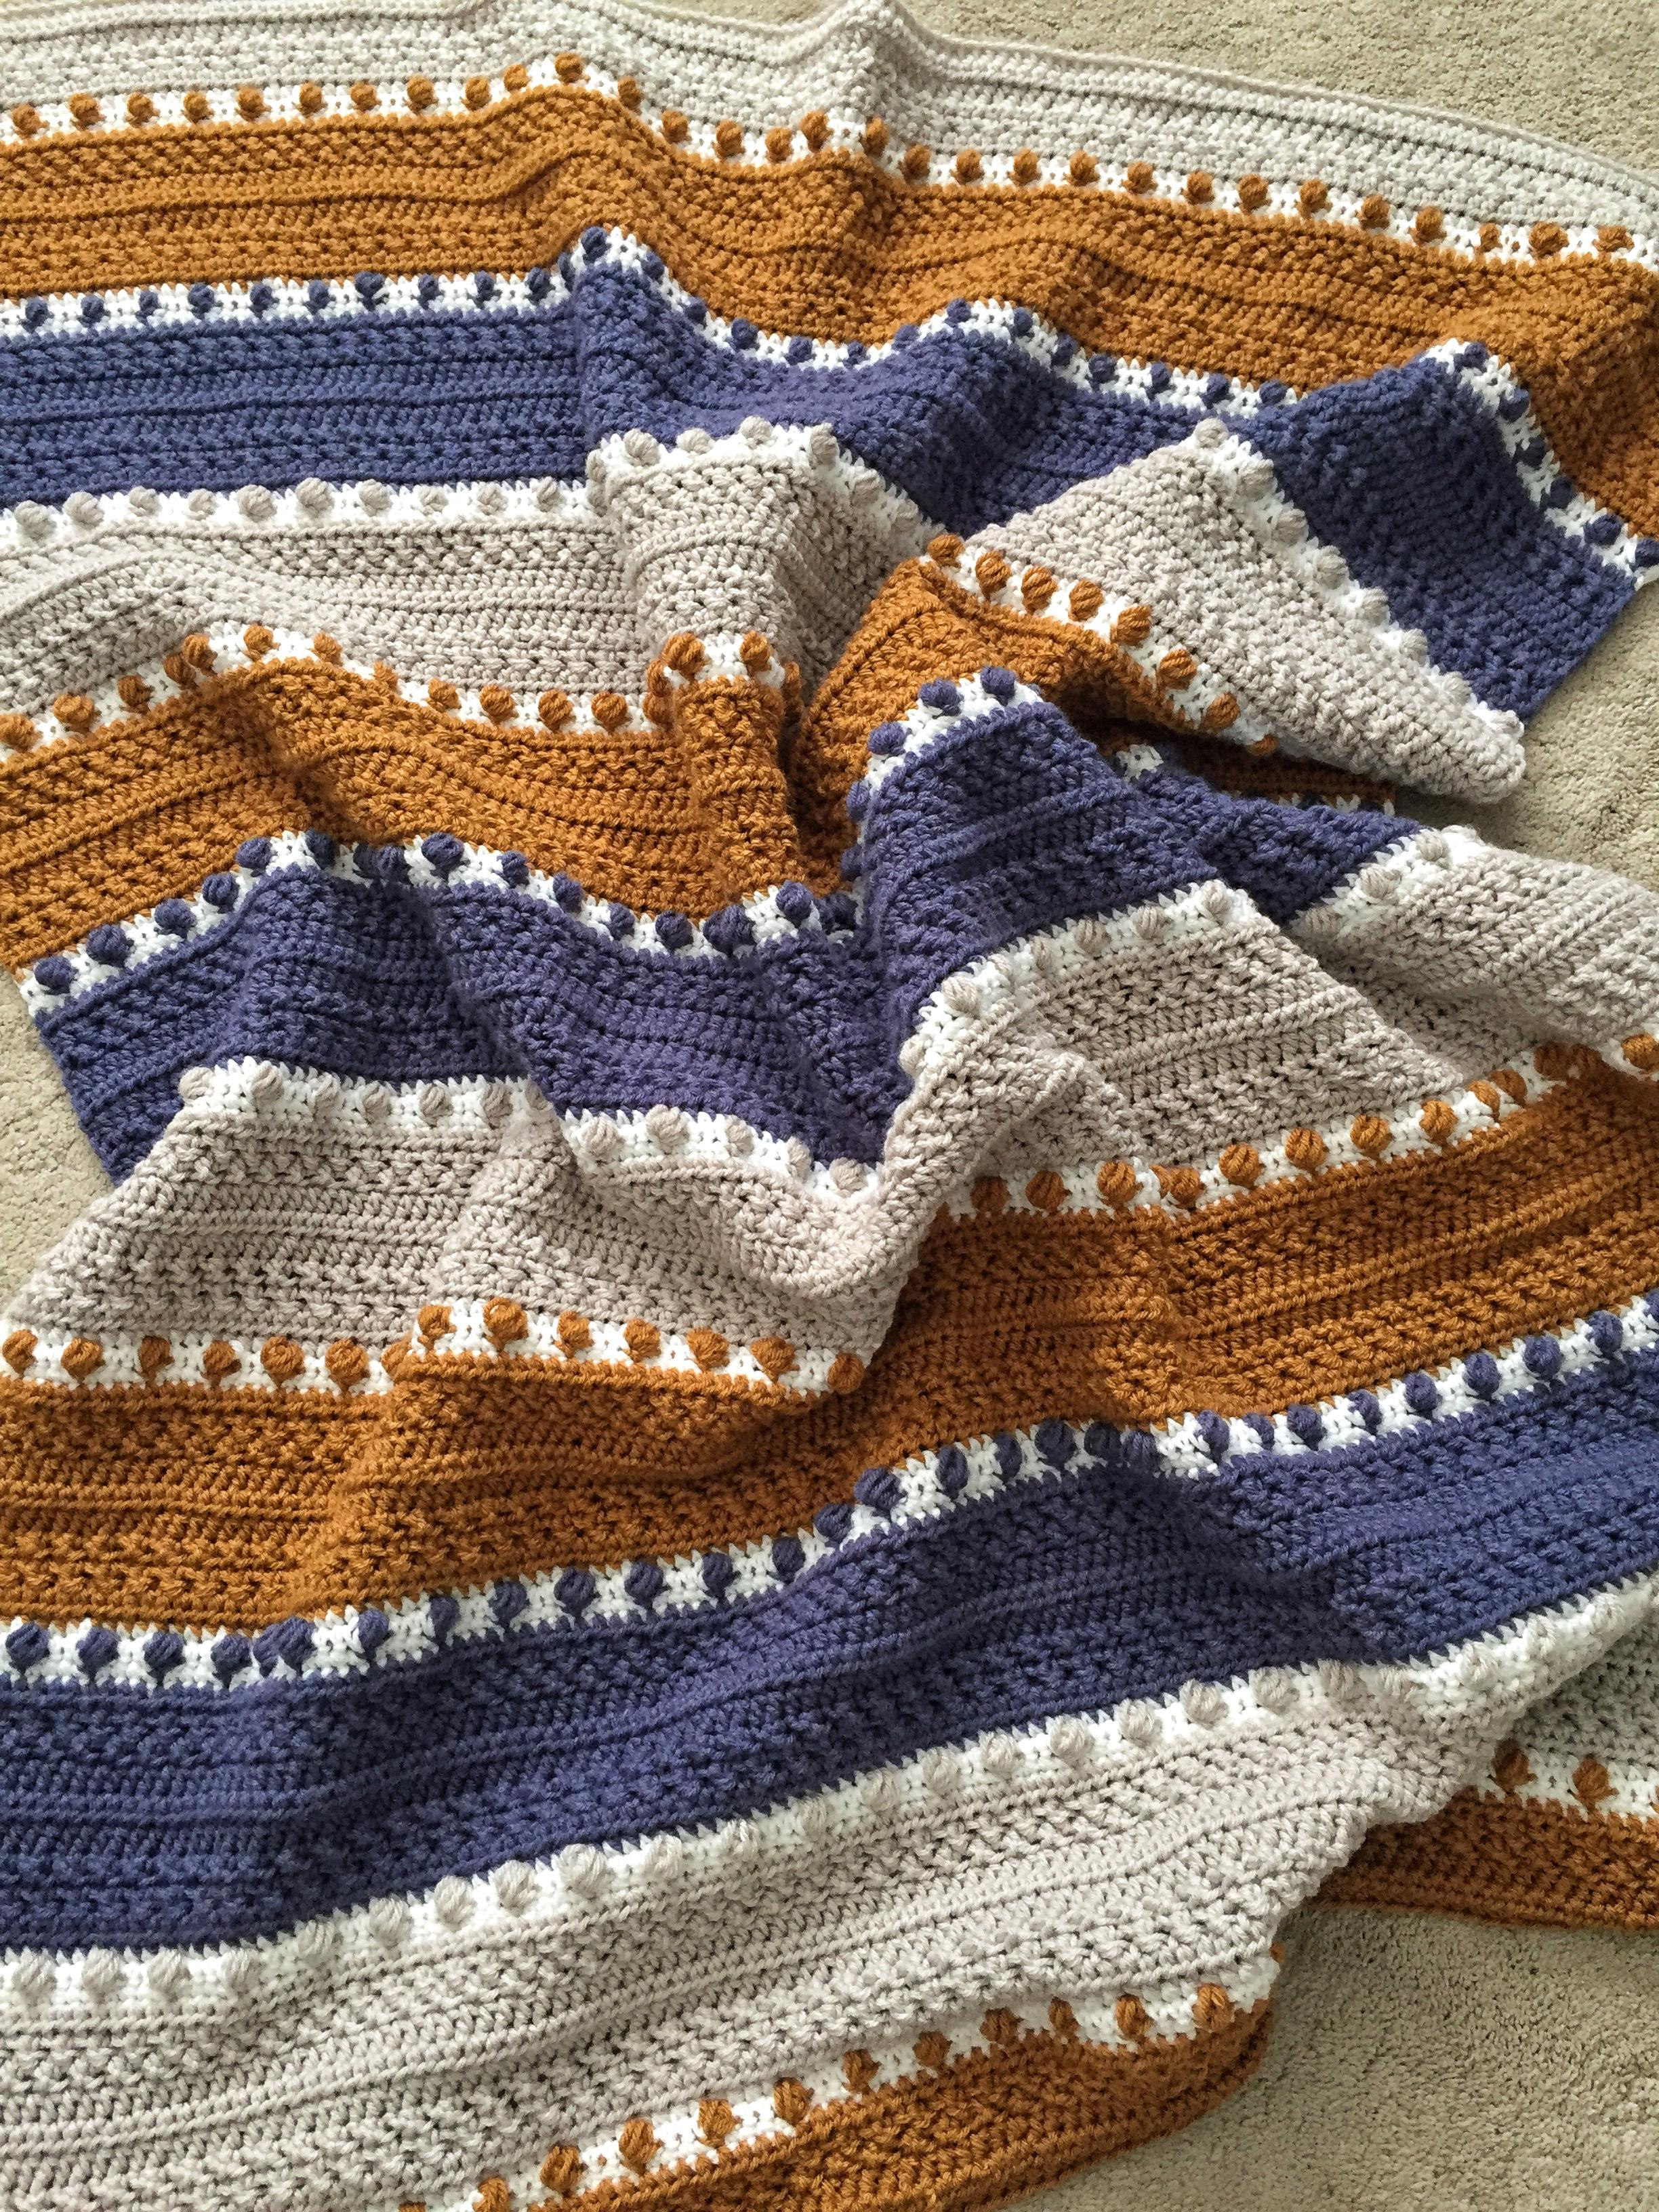 Crochet Pattern - For the Love of Texture Afghan. Crochet Heirloom Blanket. Crochet Stitches. Crochet Texture. Crochet Blanket Pattern.